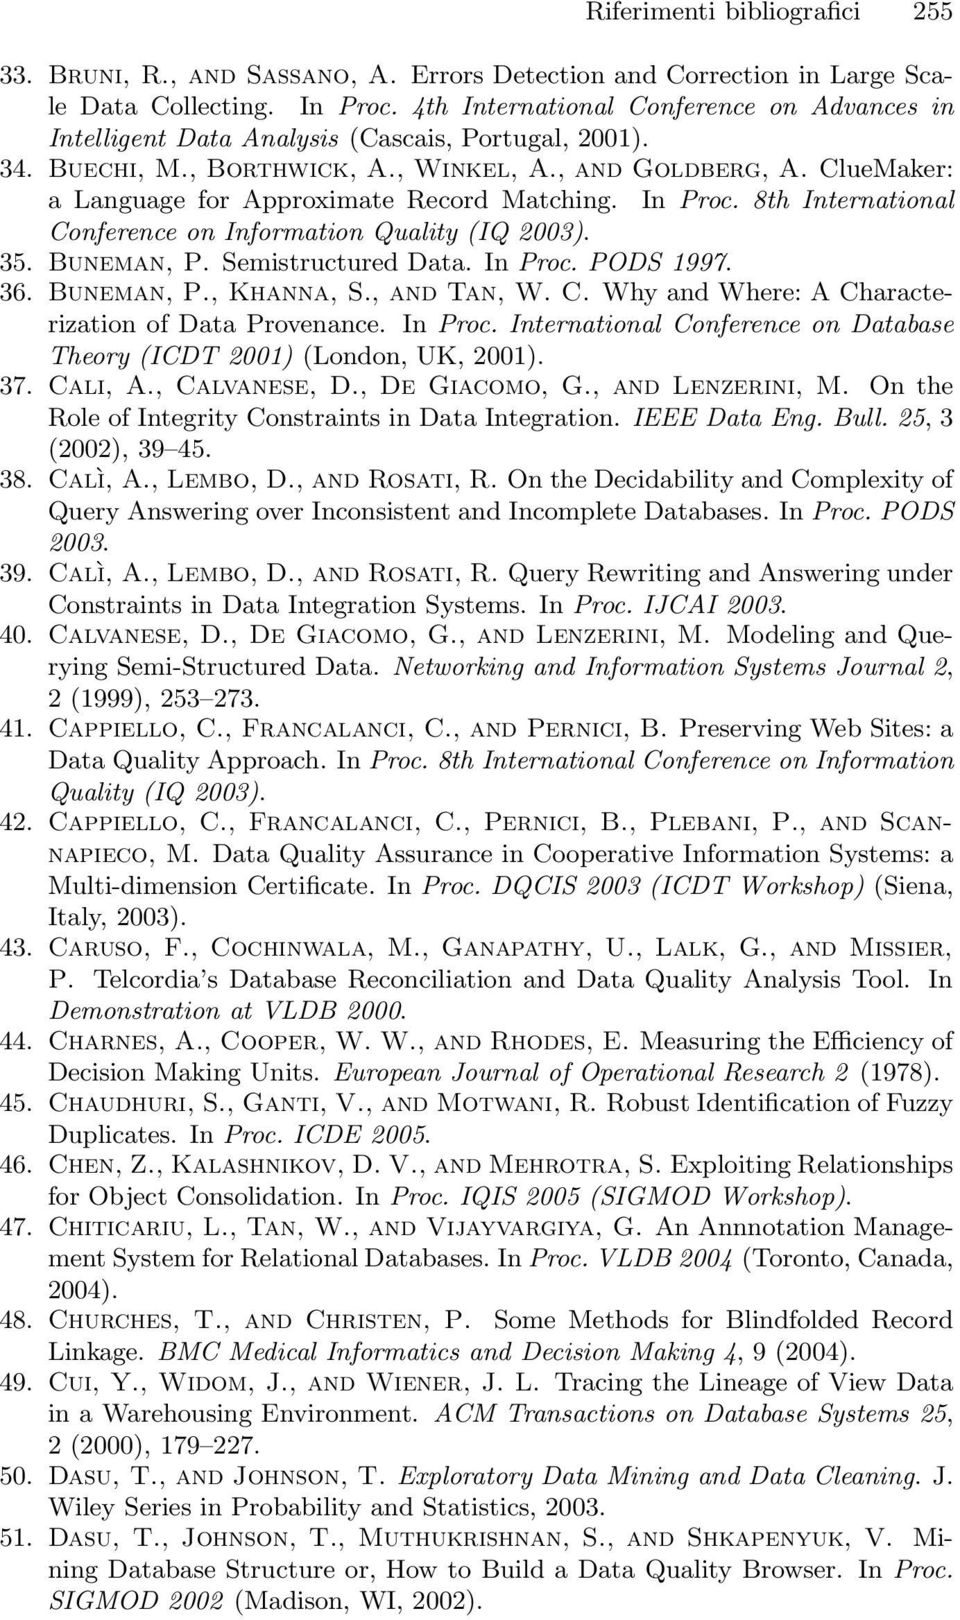 ClueMaker: a Language for Approximate Record Matching. In Proc. 8th International Conference on Information Quality (IQ 2003). 35. Buneman, P. Semistructured Data. In Proc. PODS 1997. 36. Buneman, P., Khanna, S.